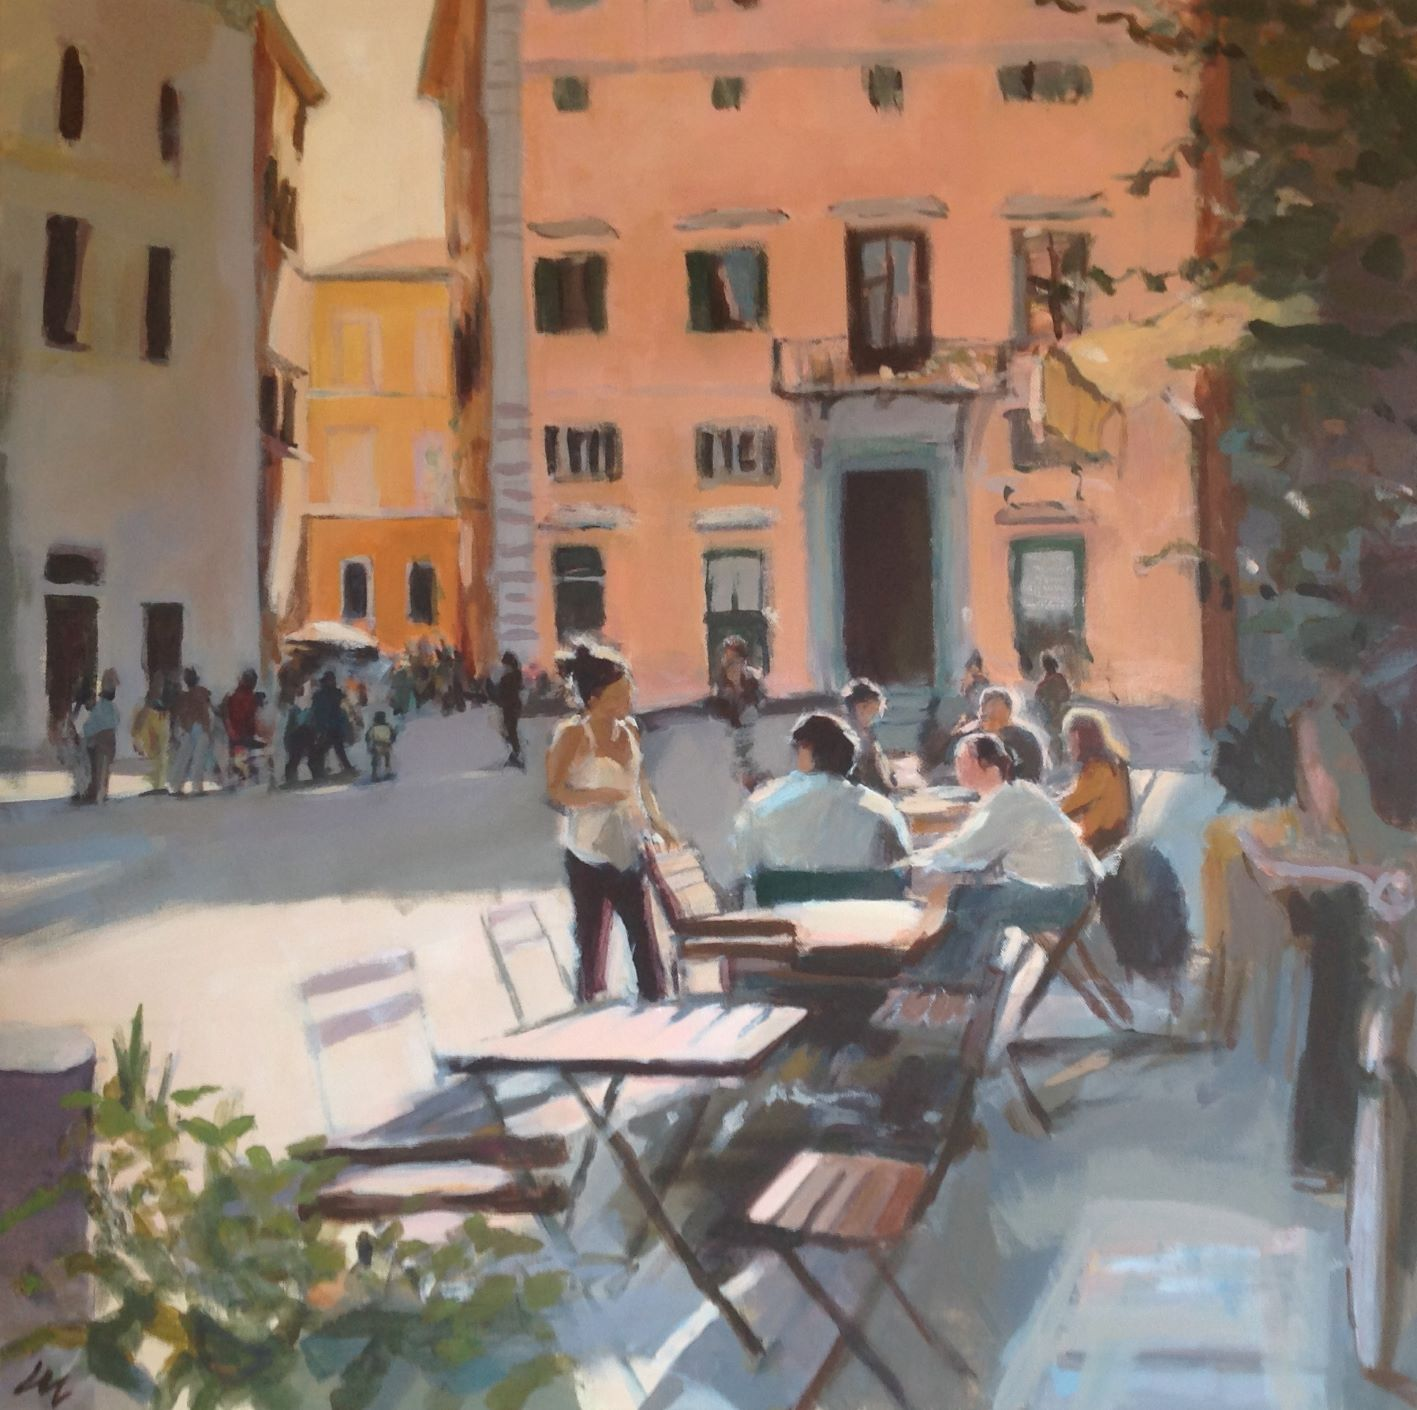 Café in the sunlight, Rome